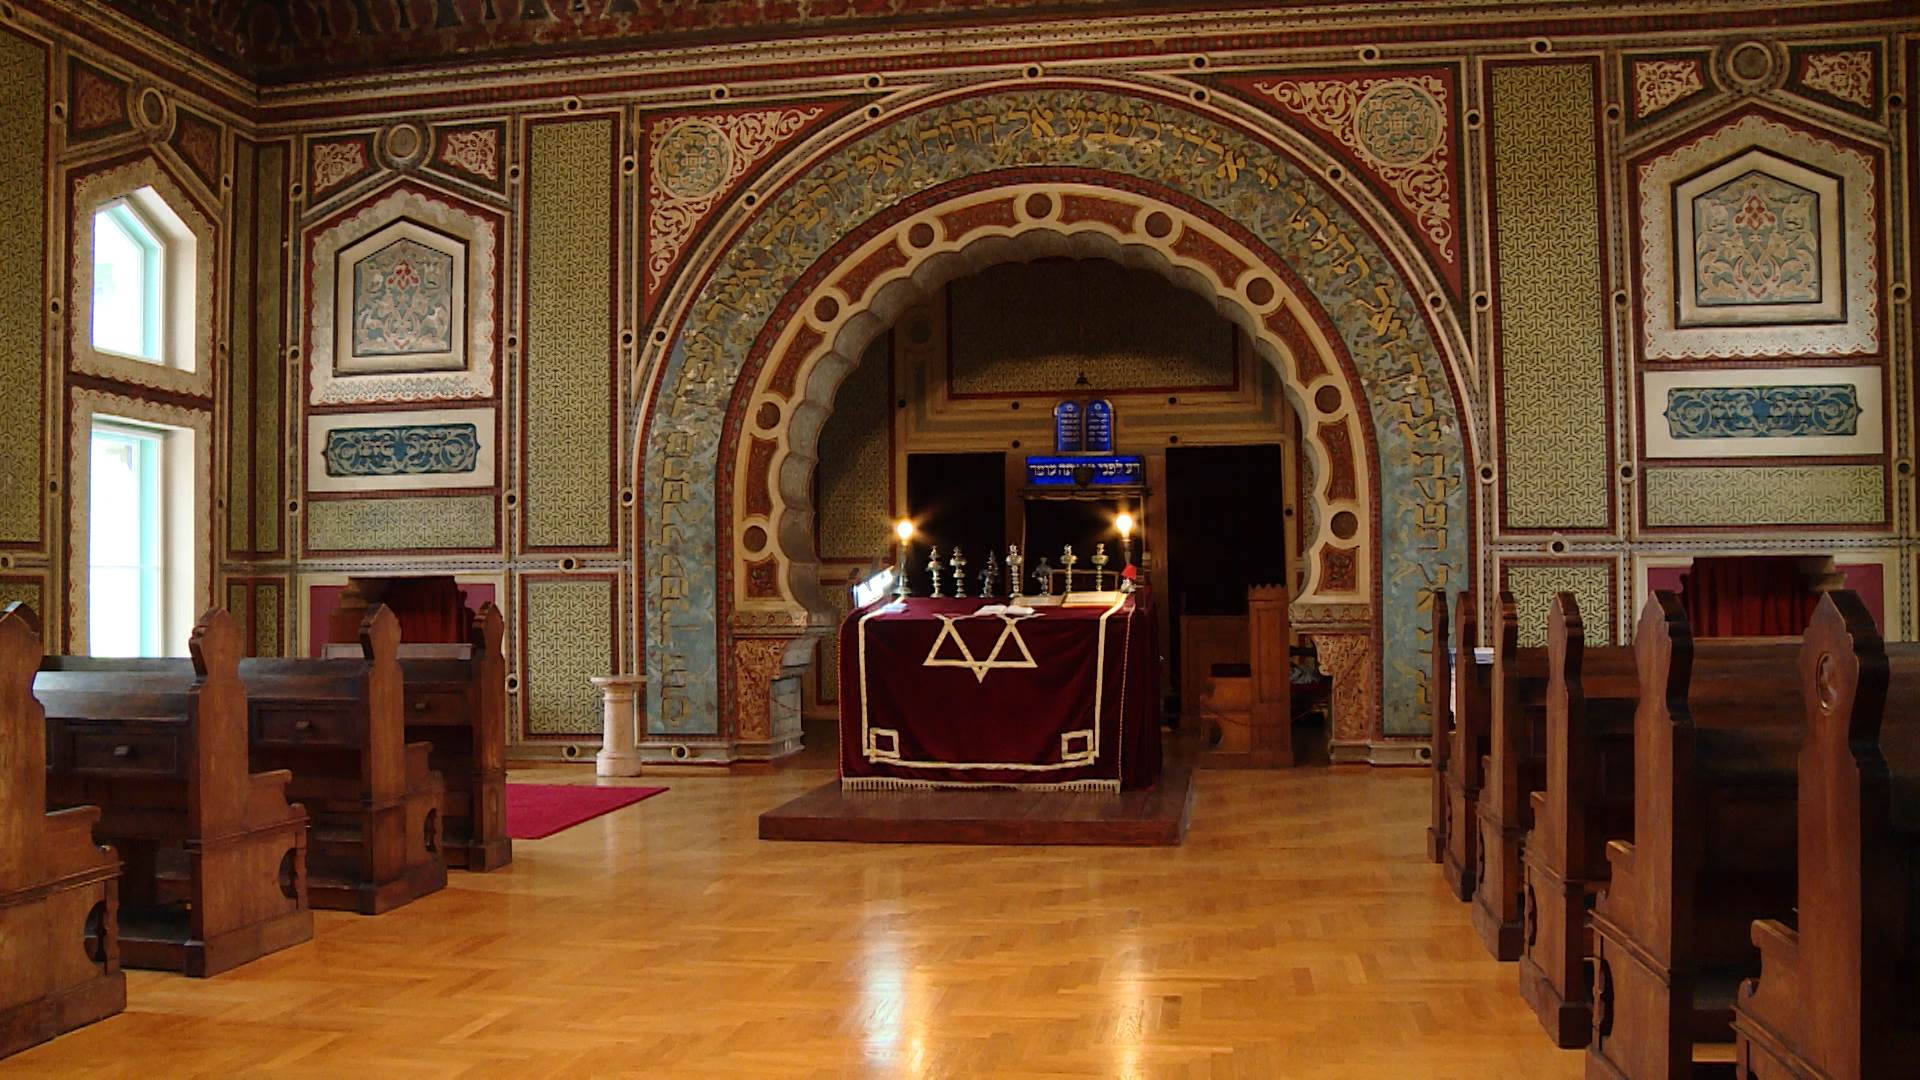 Jewish community in Bosnia